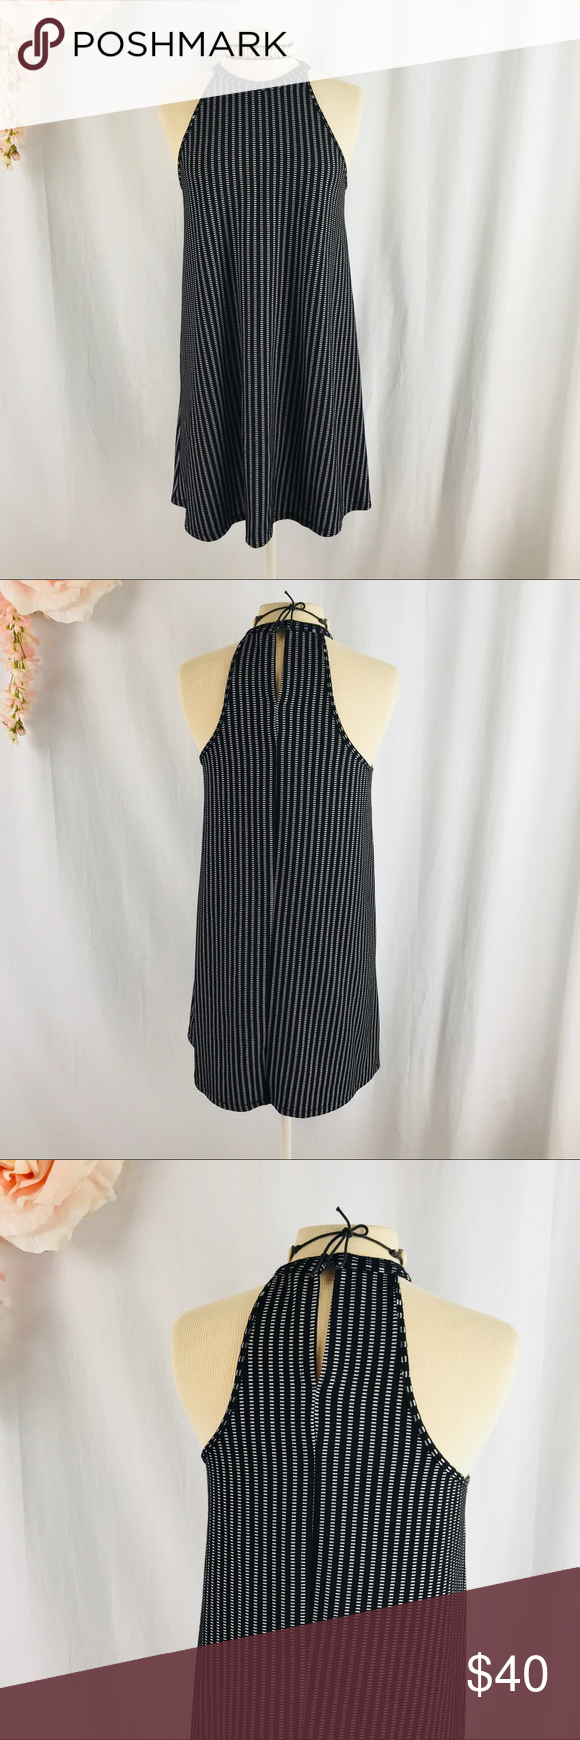 2a67ce4bb707 ZARA Trafaluc Dress Super cute casual stretch knit. Perfect for laying  Condition-Excellent no damage Zara Dresses